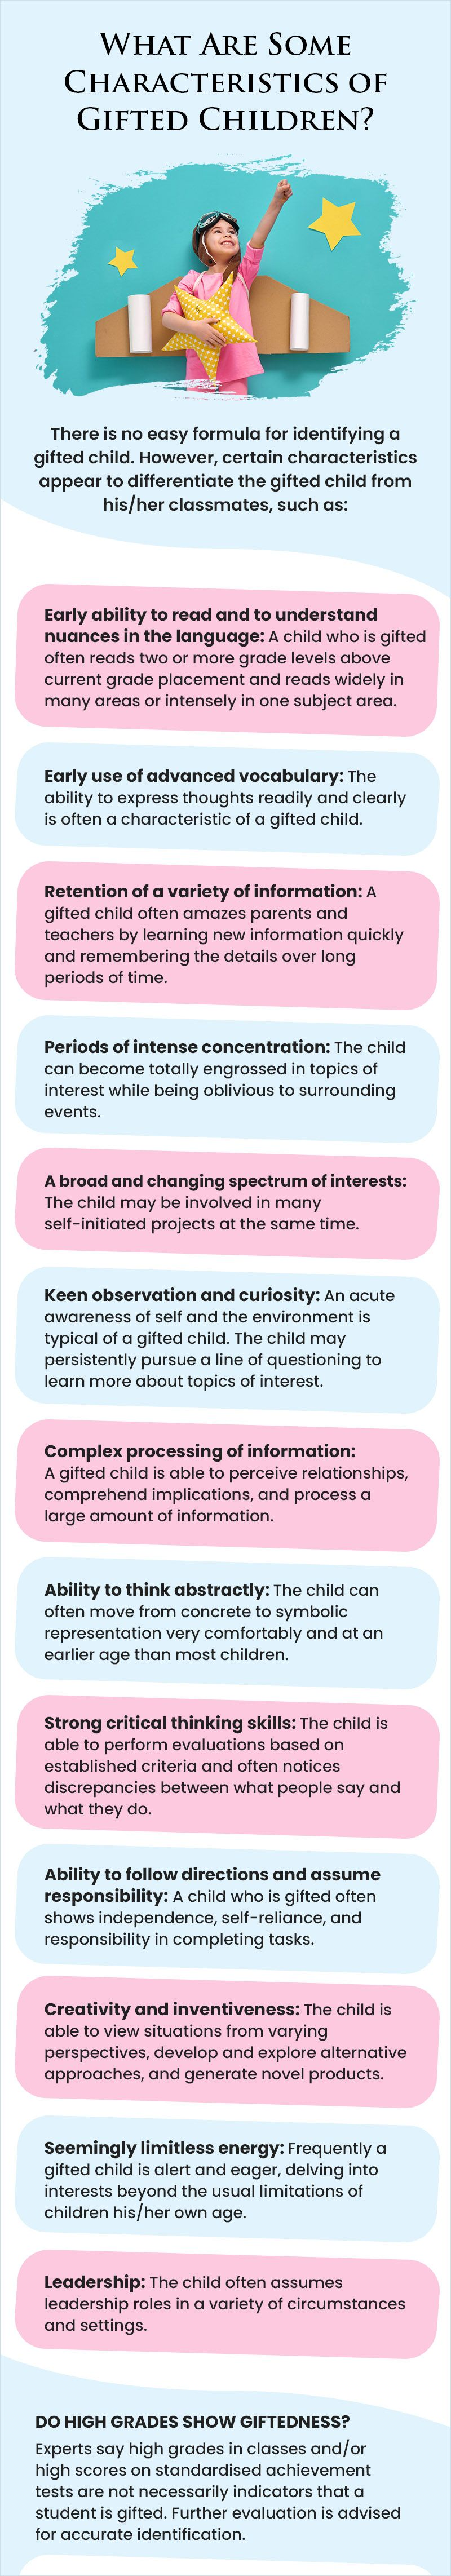 How to spot gifted children